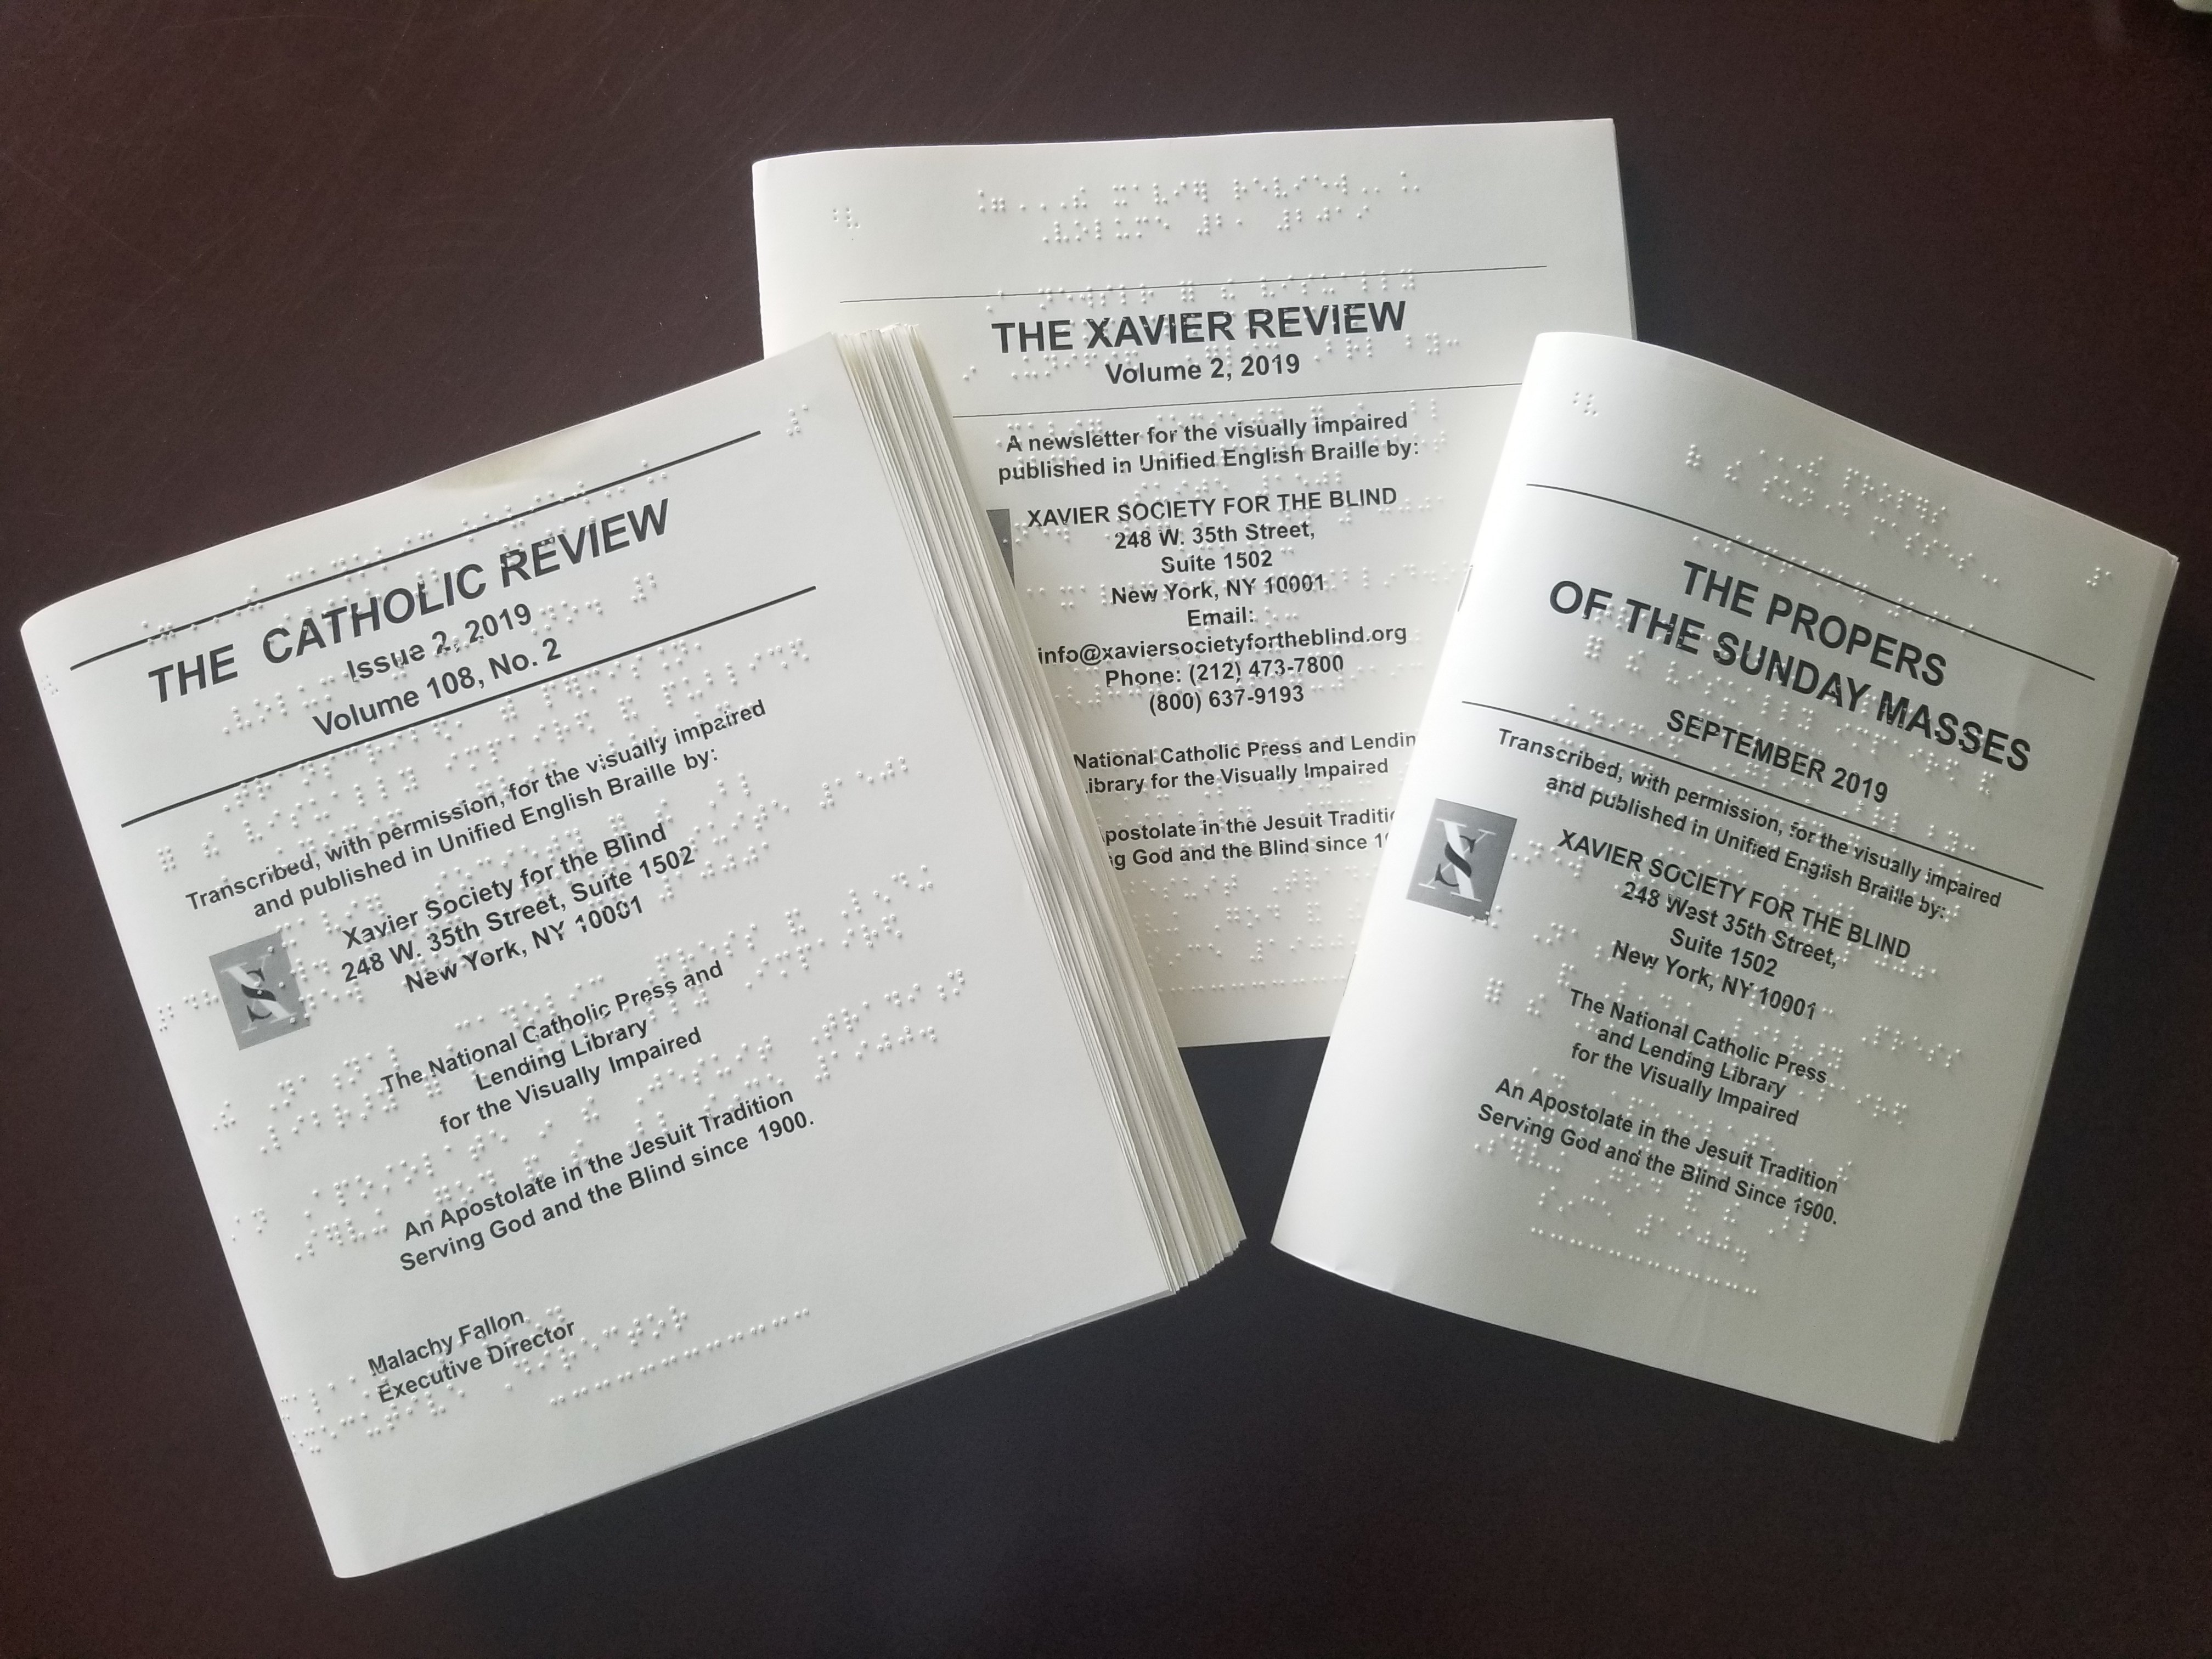 Examples of the braille Mass Propers, Catholic Review and Xavier Review